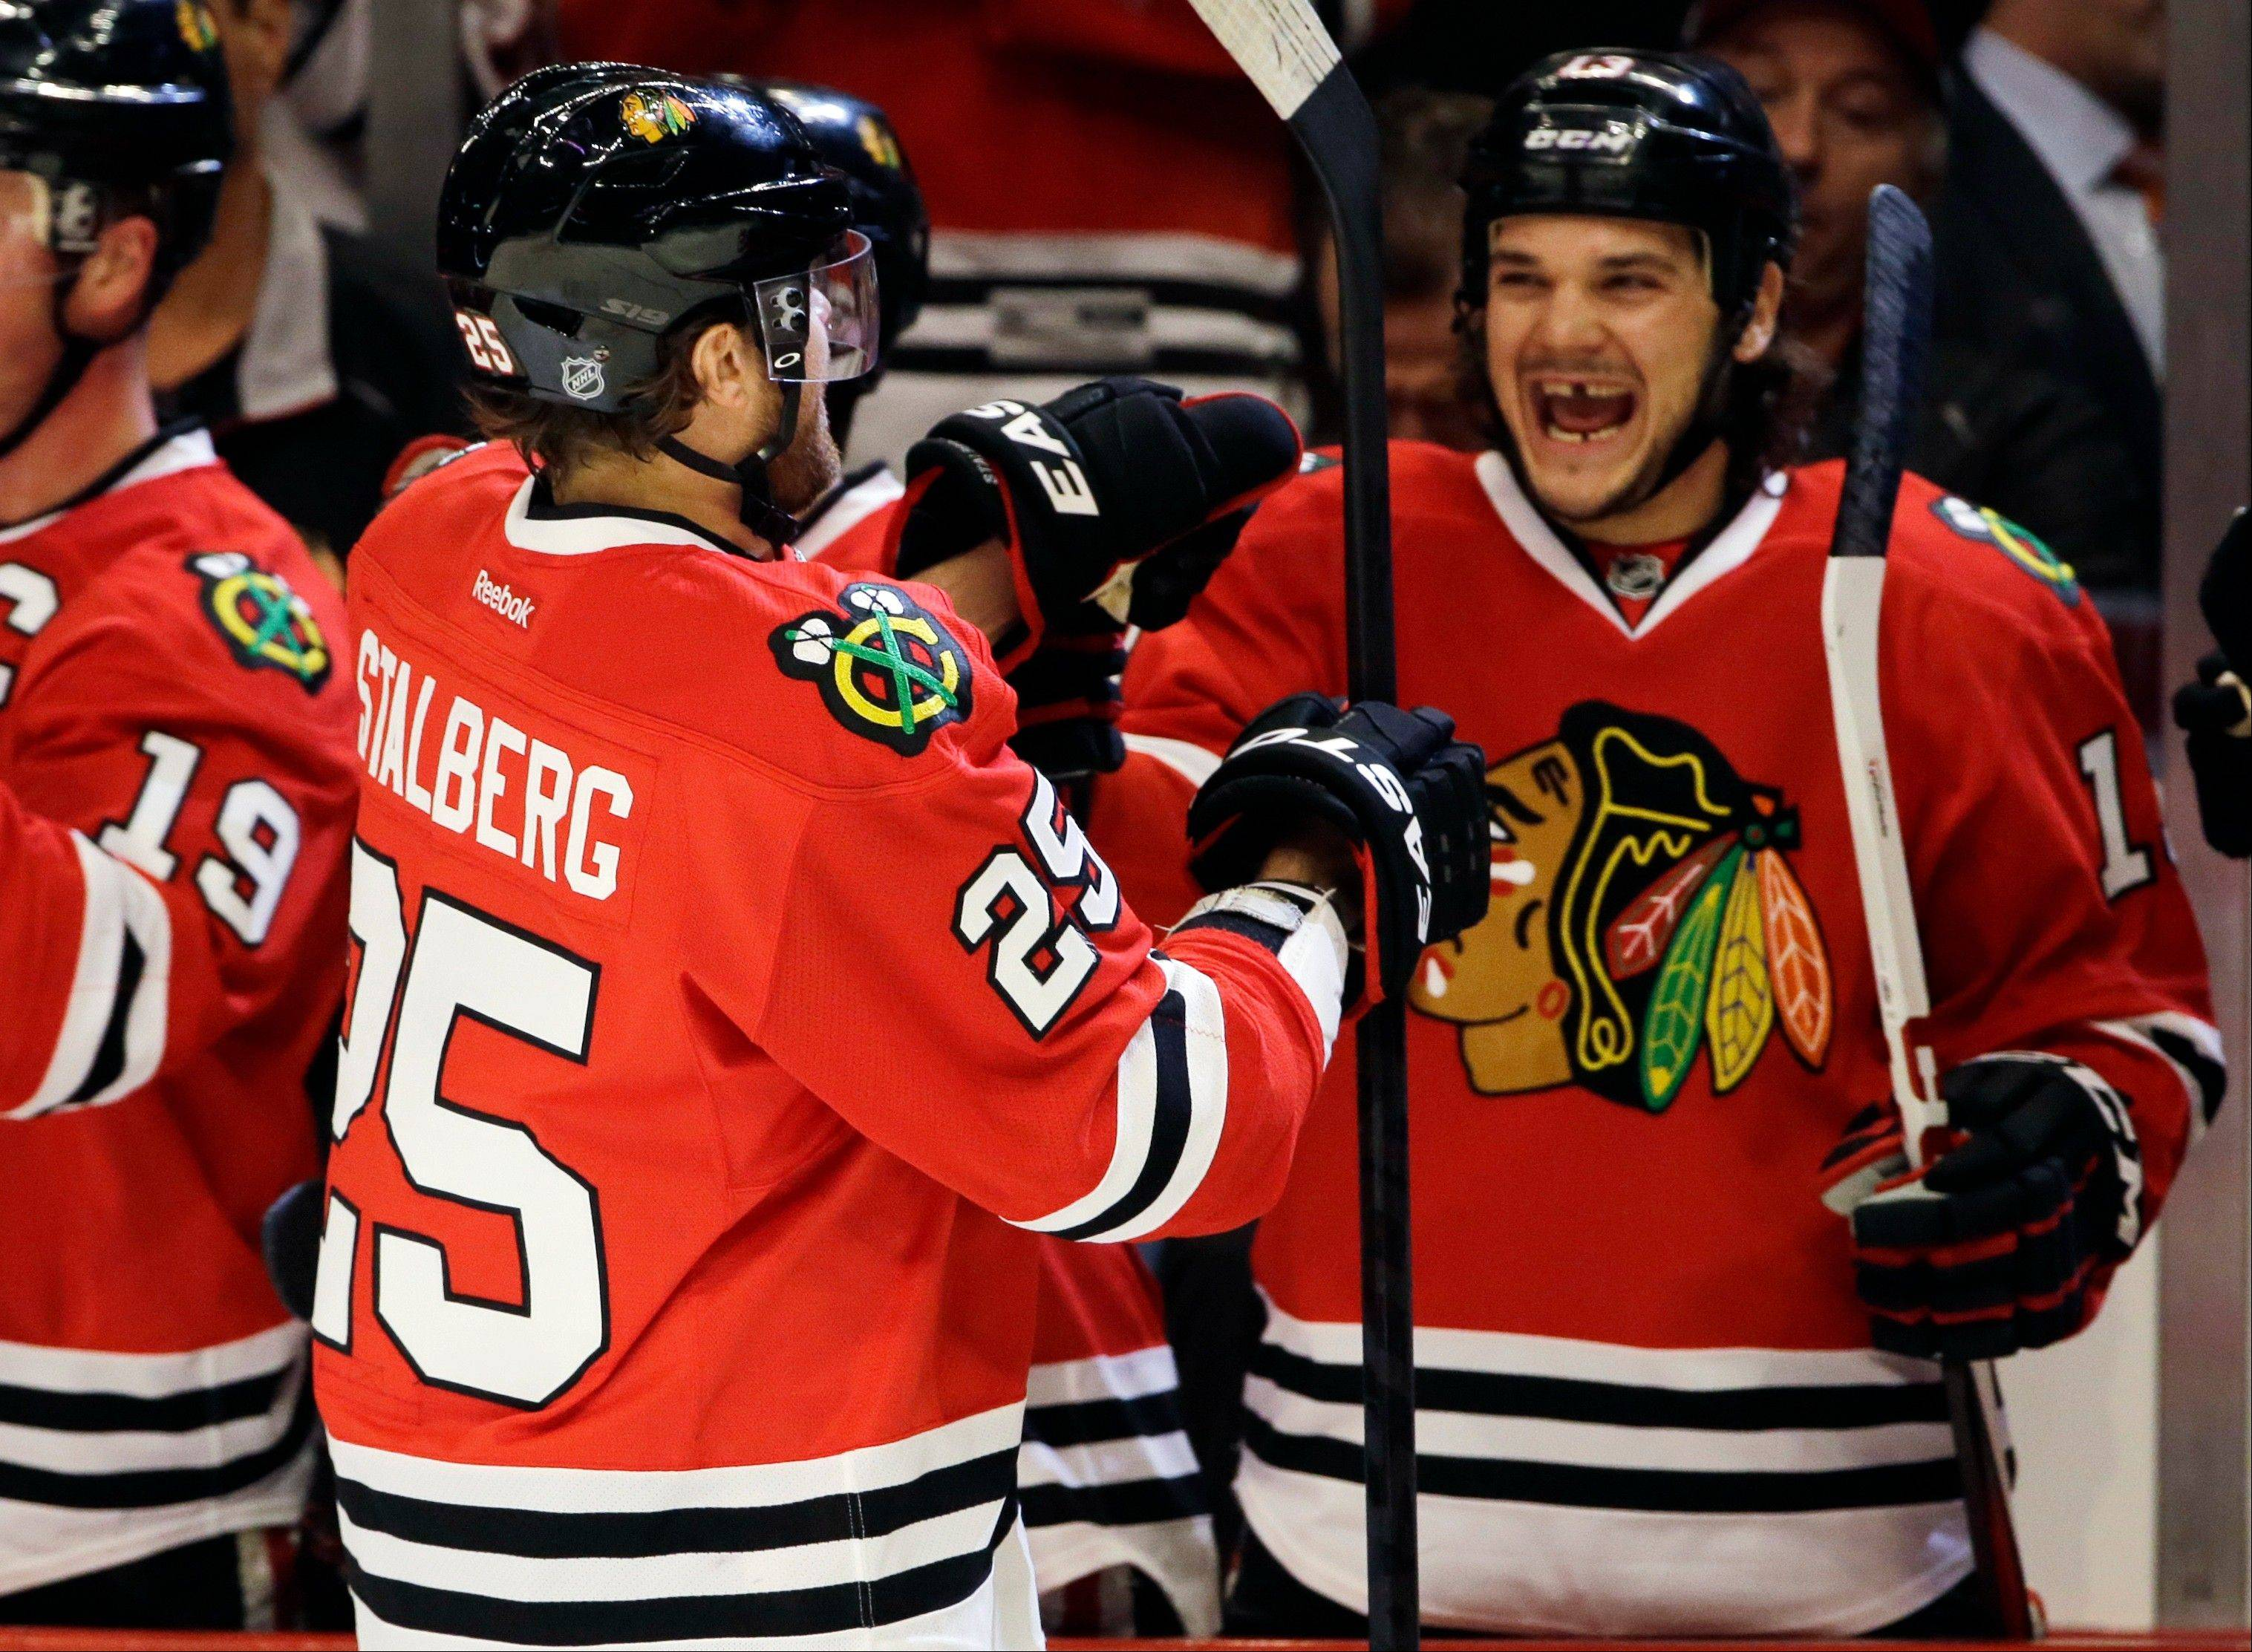 Chicago Blackhawks' Viktor Stalberg celebrates with teammates after scoring.